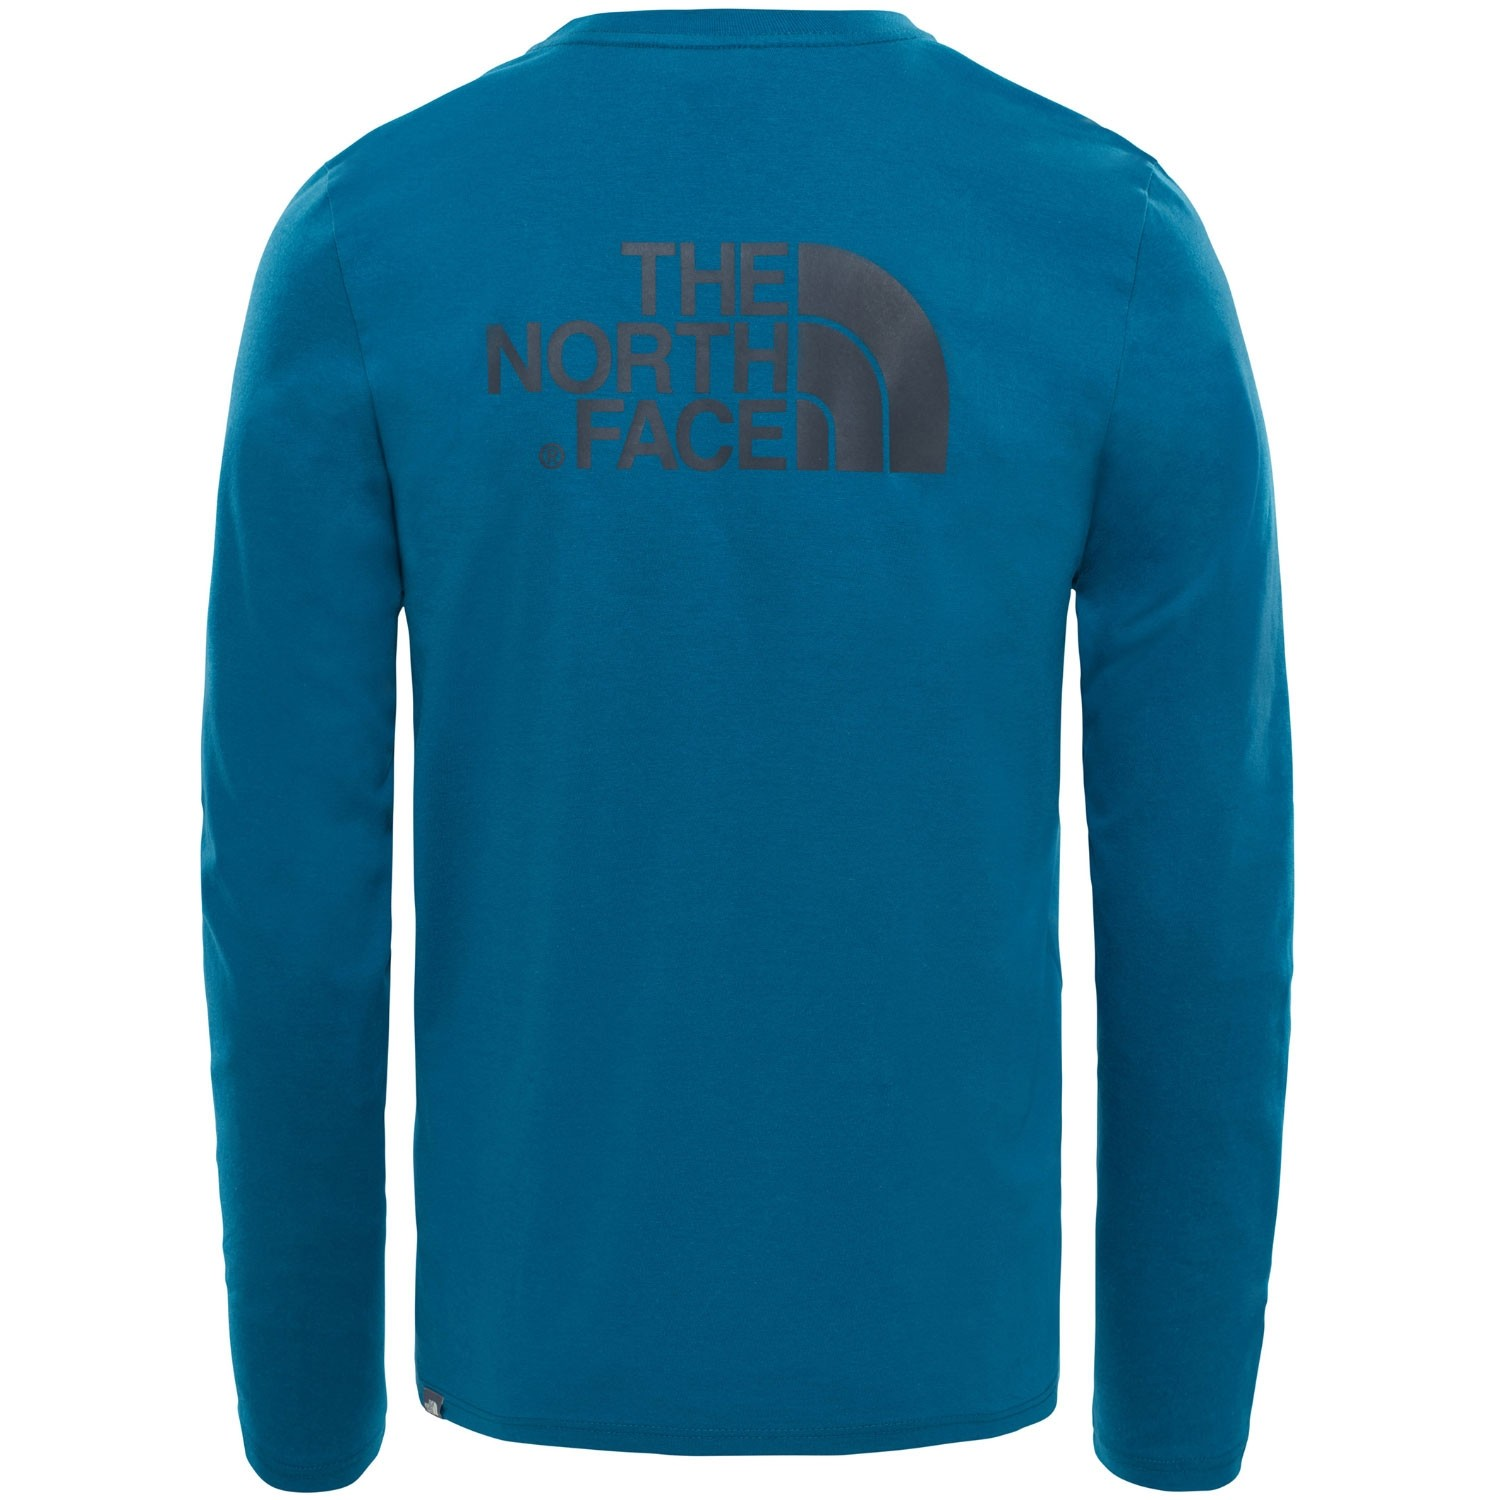 The North Face Long Sleeve Easy Tee - Blue Coral - Back